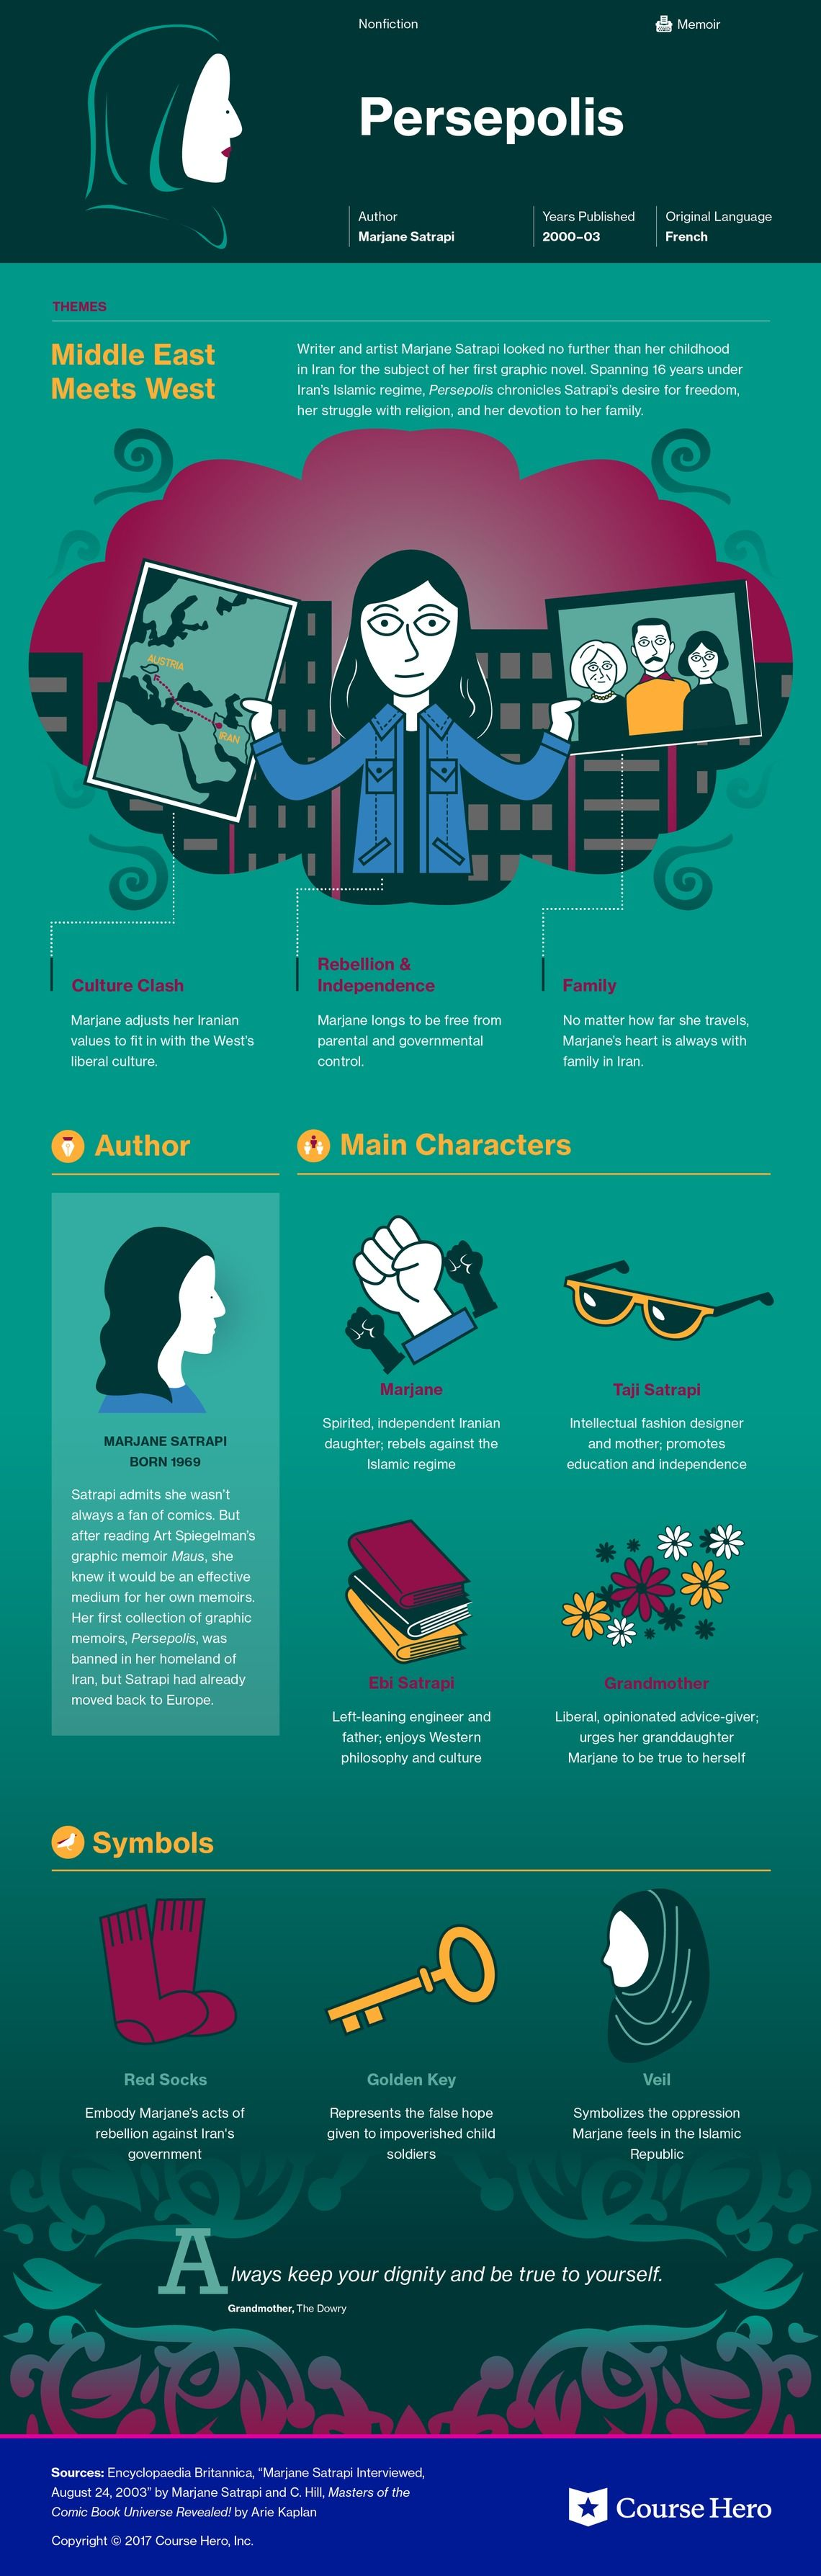 Infographic For Persepolis Literature Literature Study Guides Book Study